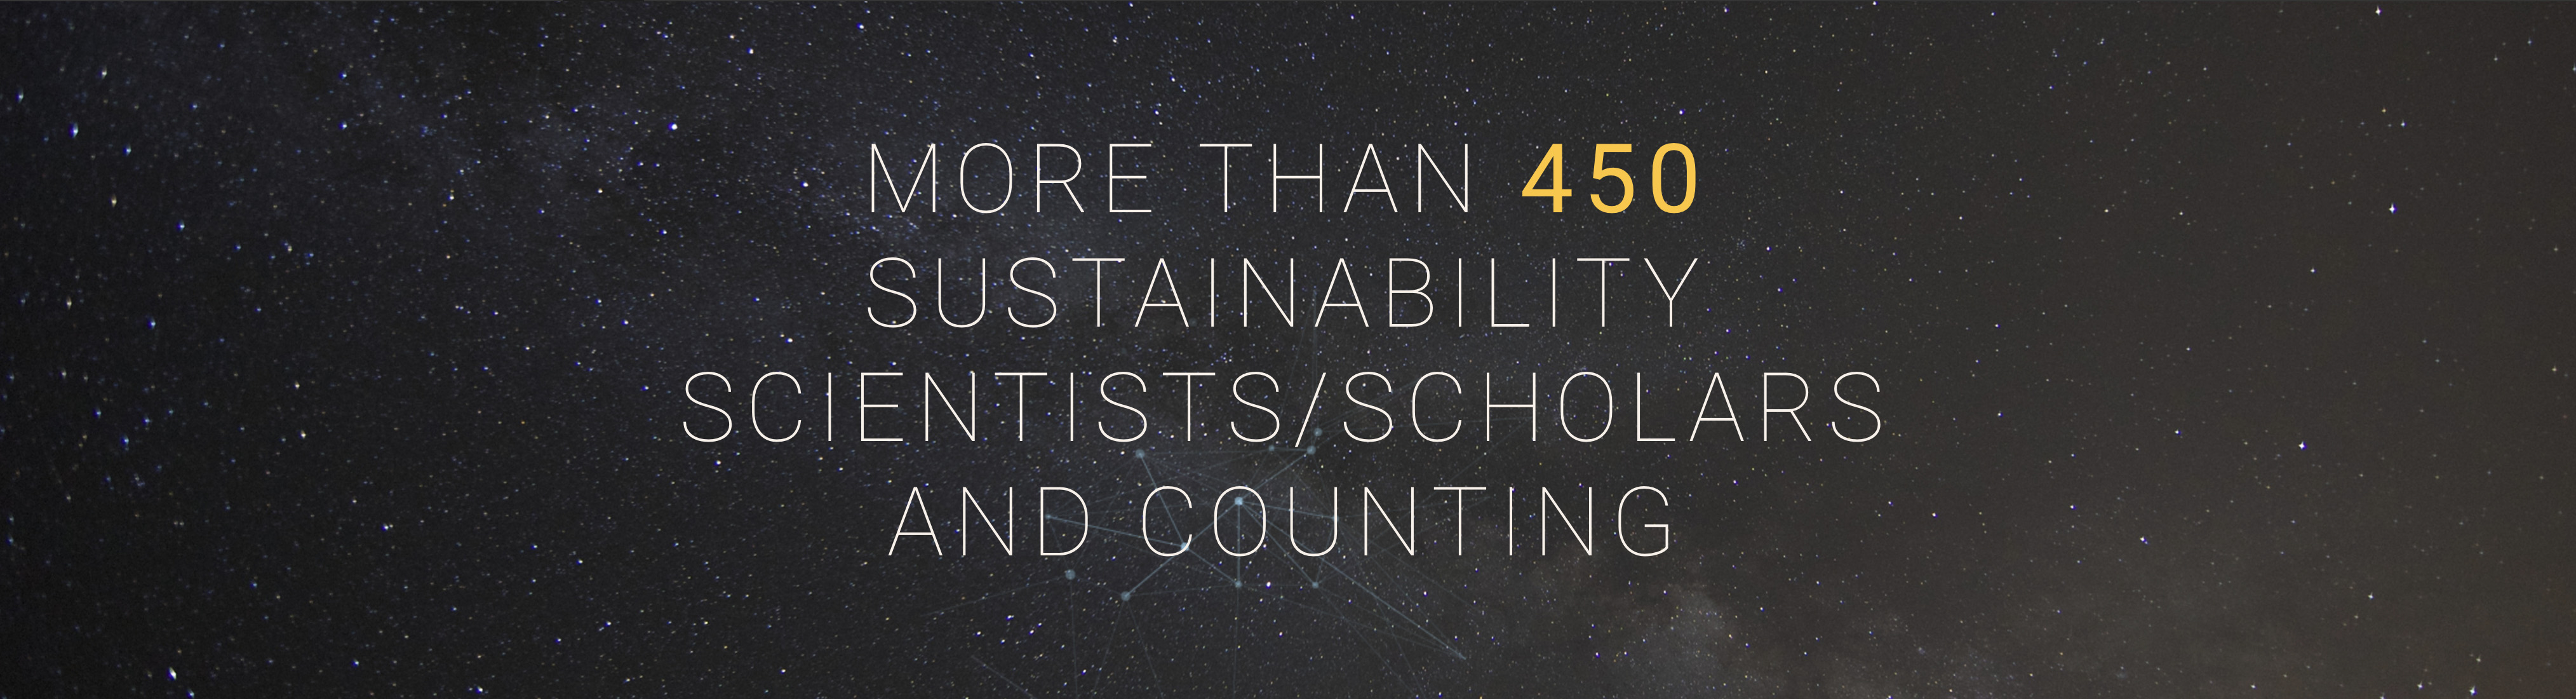 More than 450 Sustainability Scientists/Schoalrs and Counting Screen Shot